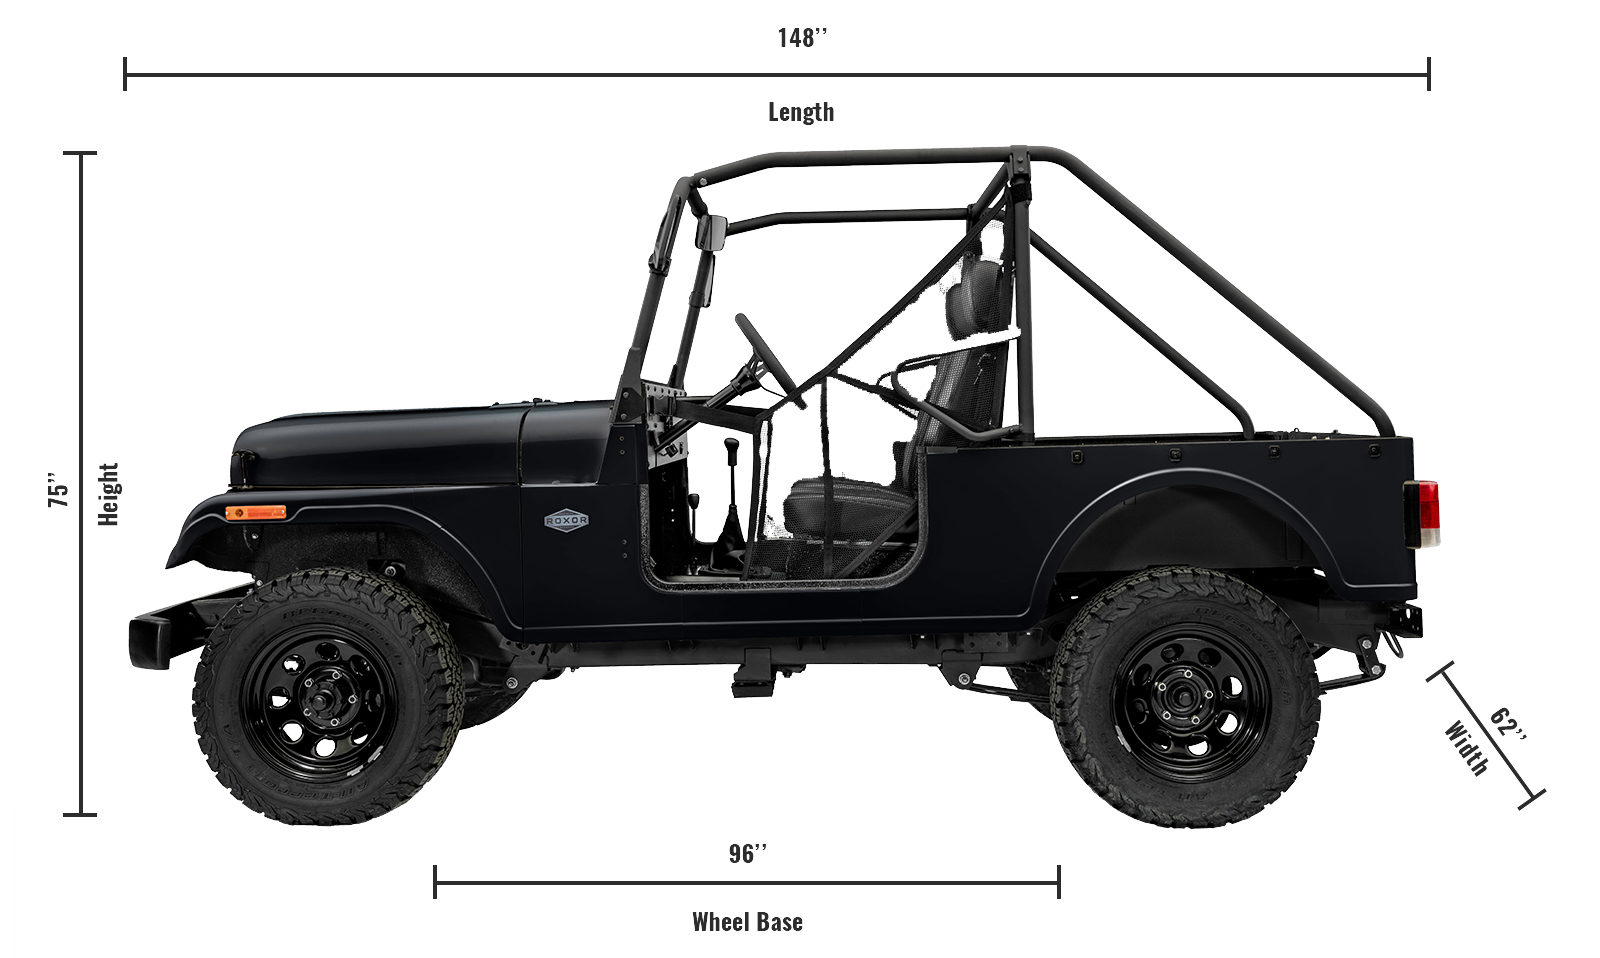 Roxor Off-Roading Vehicle with Measurement